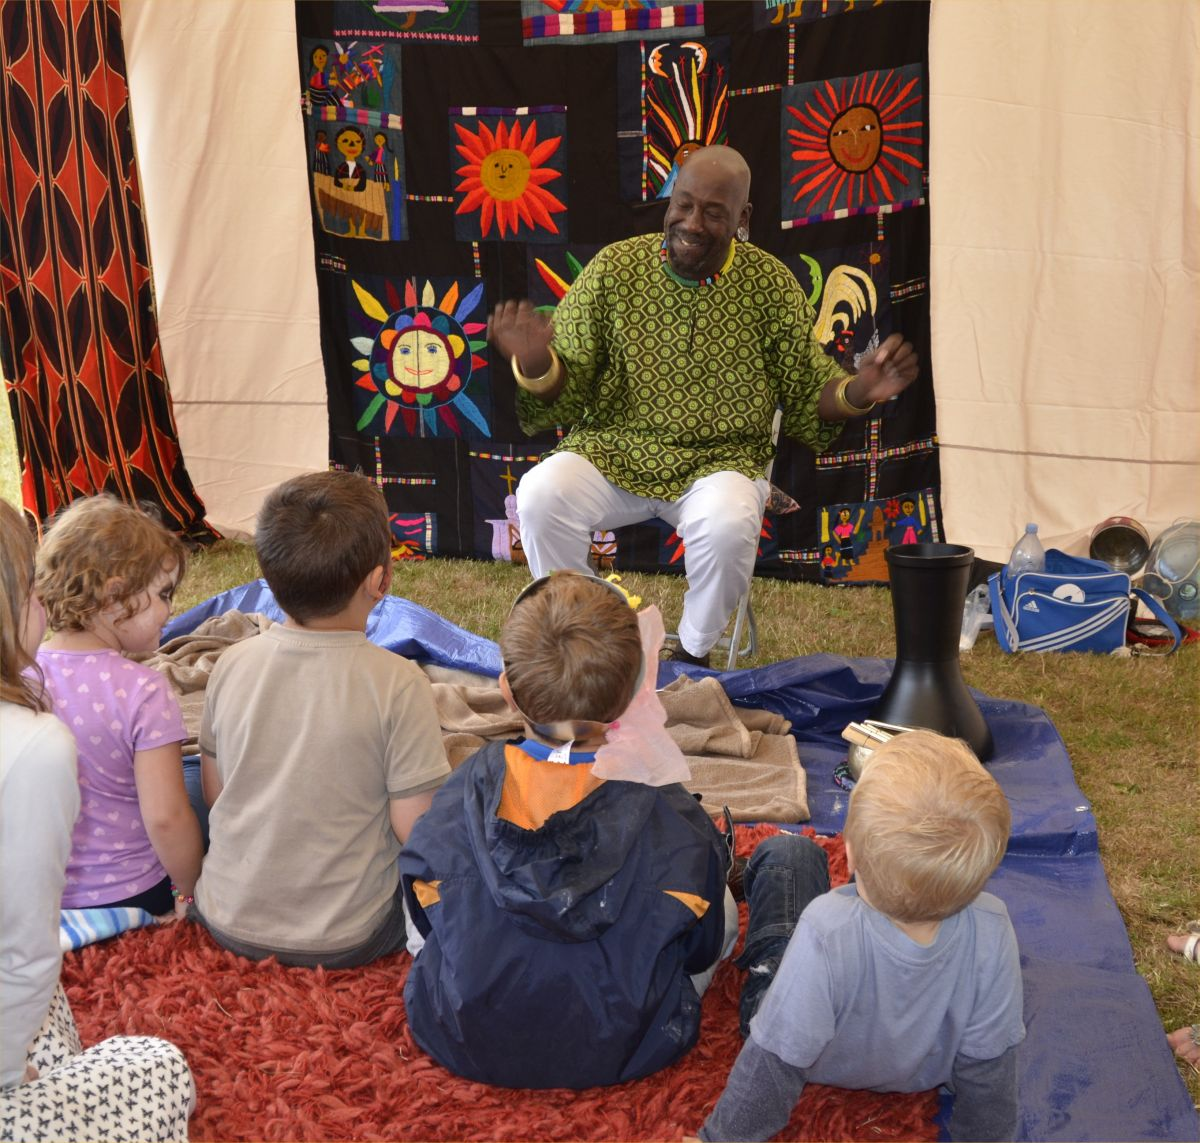 TUUP the storyteller weaving his magic over a spellbound audience at the Watchet Children's Festival last year. PHOTO: Cherrie Temple.